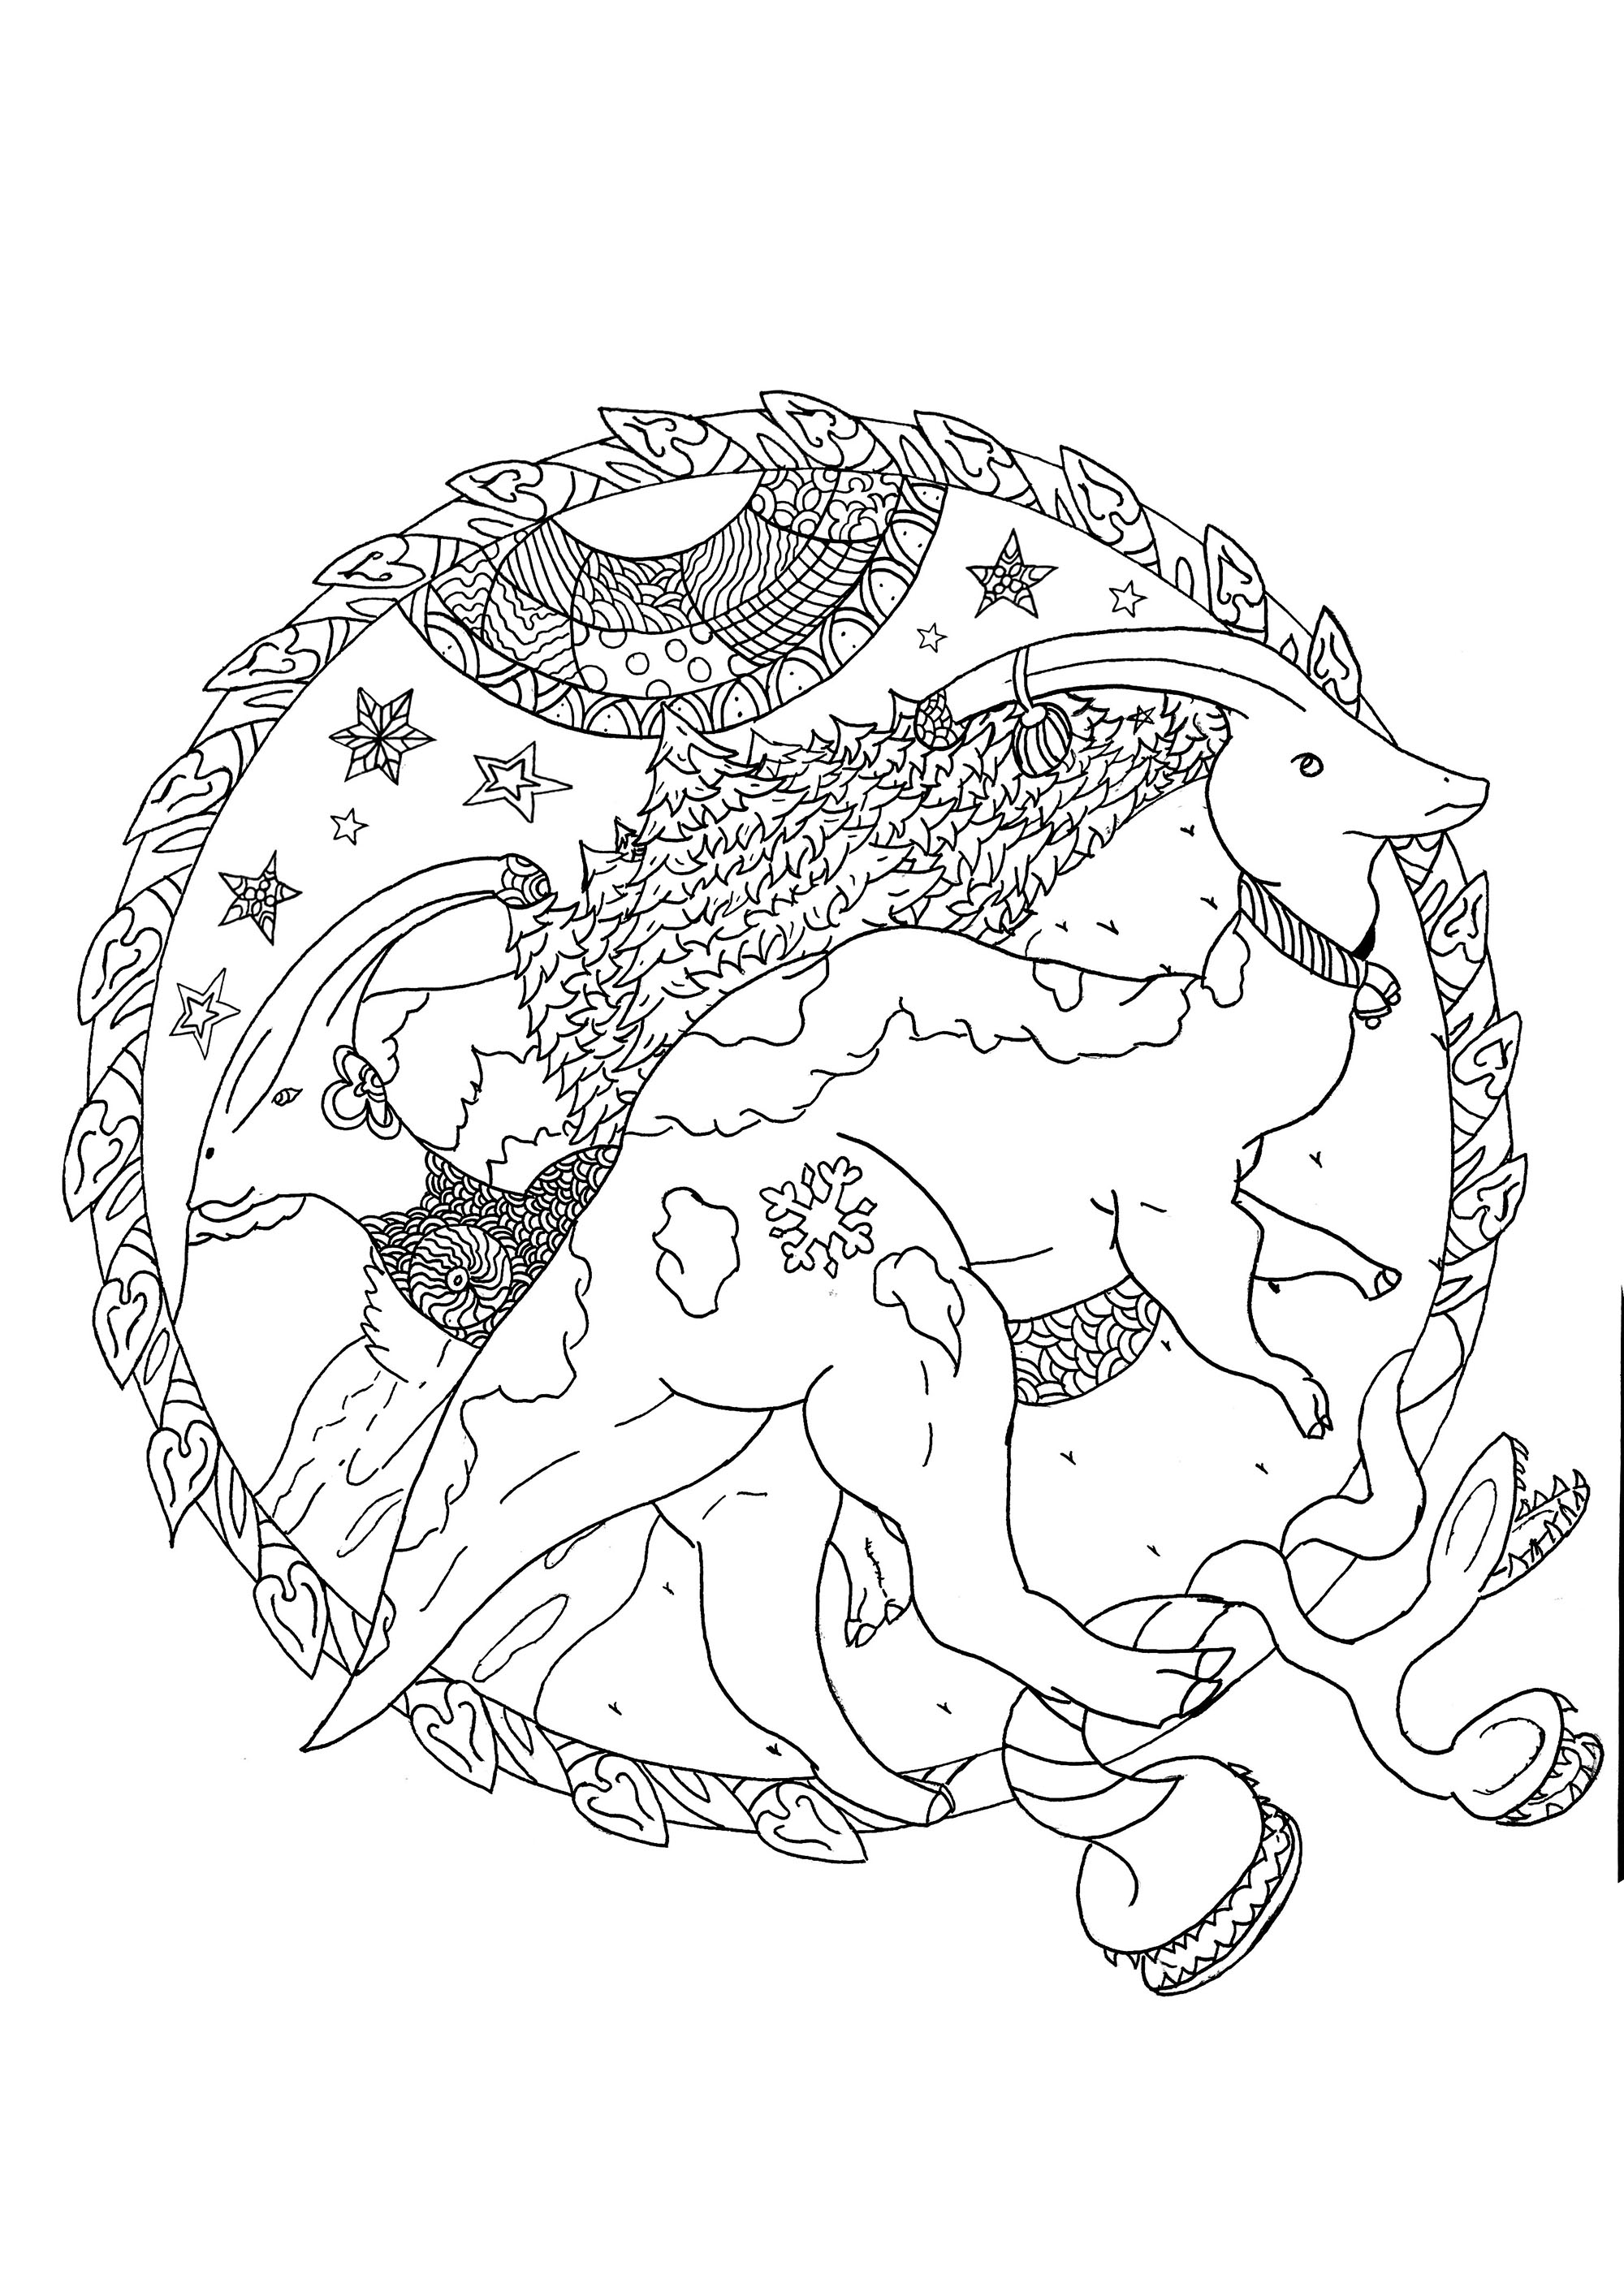 Two Parasaurolophus with pretty Christmas motifs